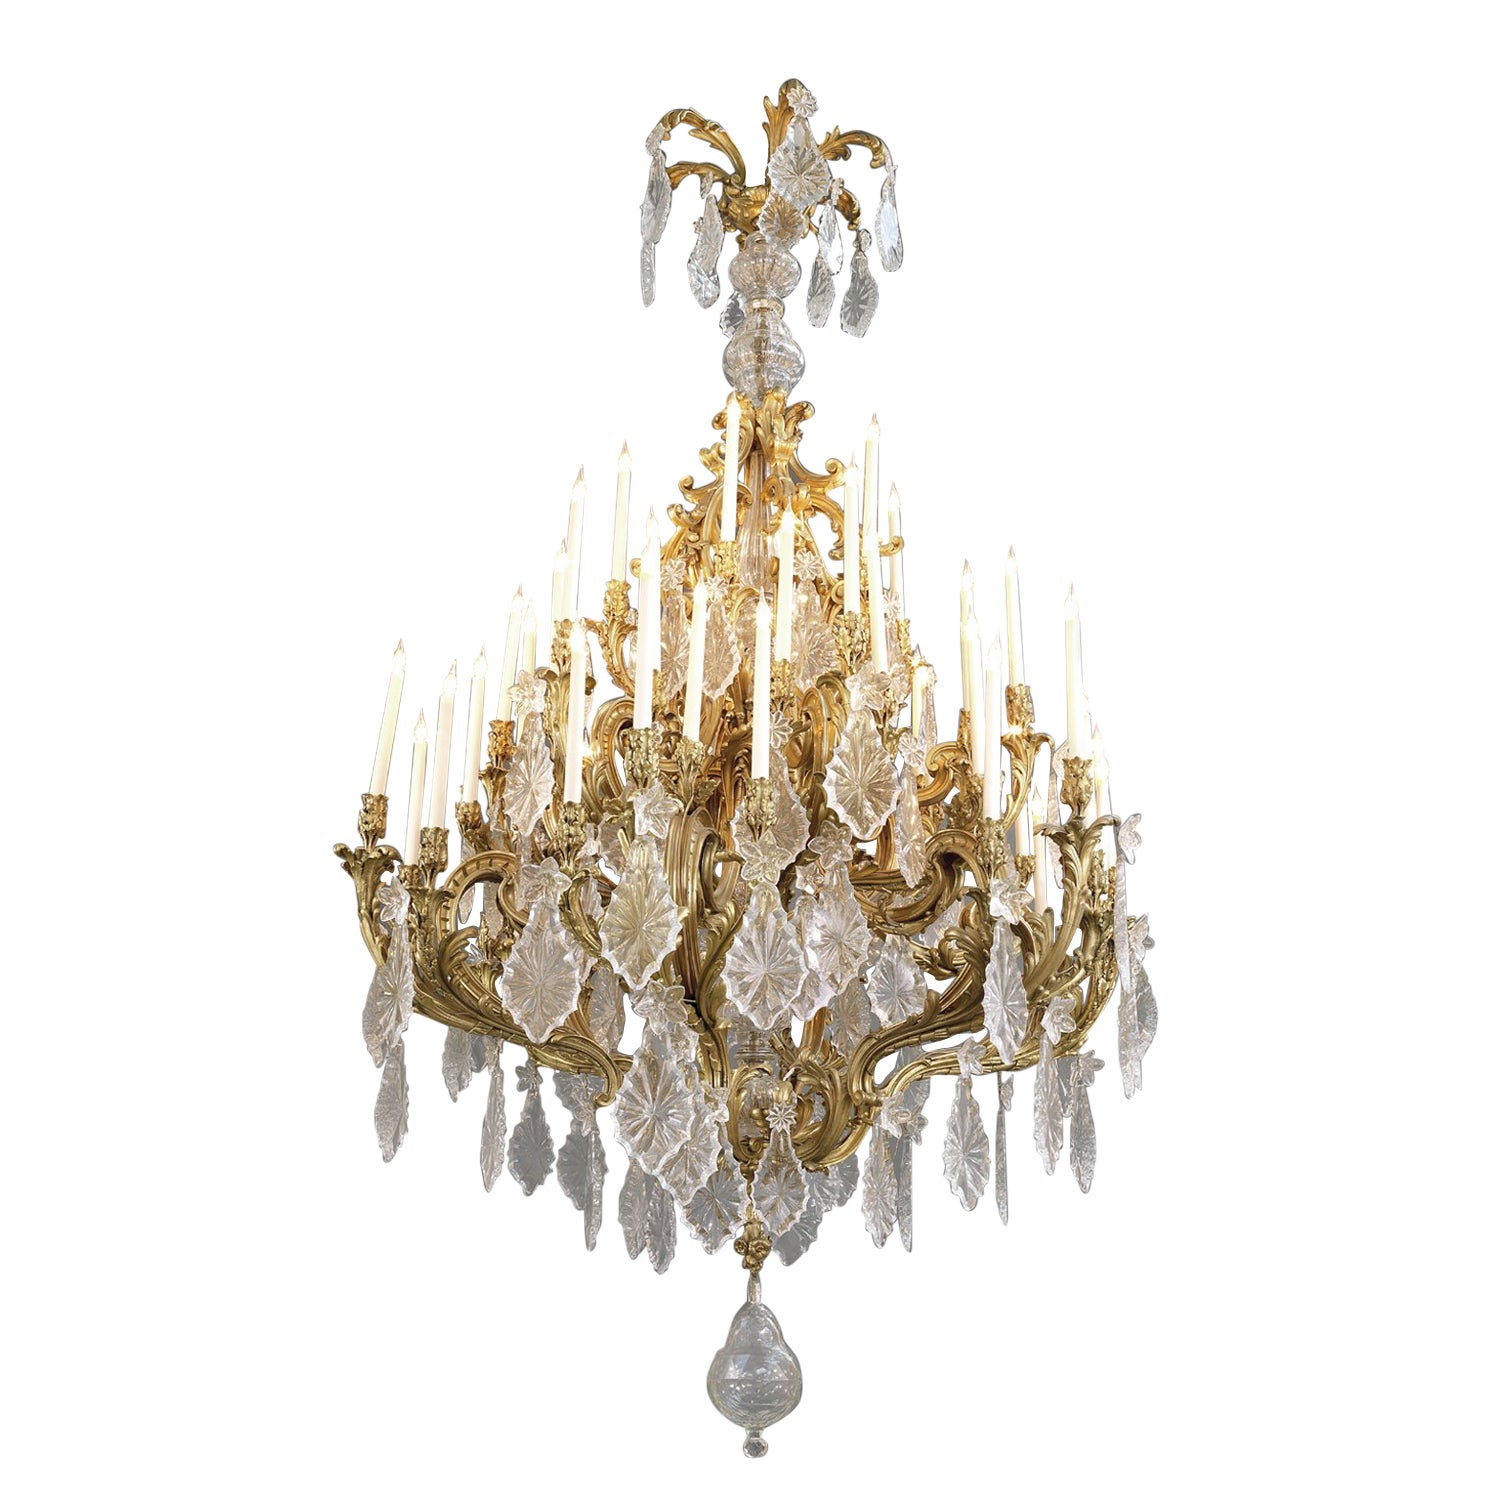 Monumental Louis XV Style Cut-Glass Forty-Eight Light Chandelier, circa 1885